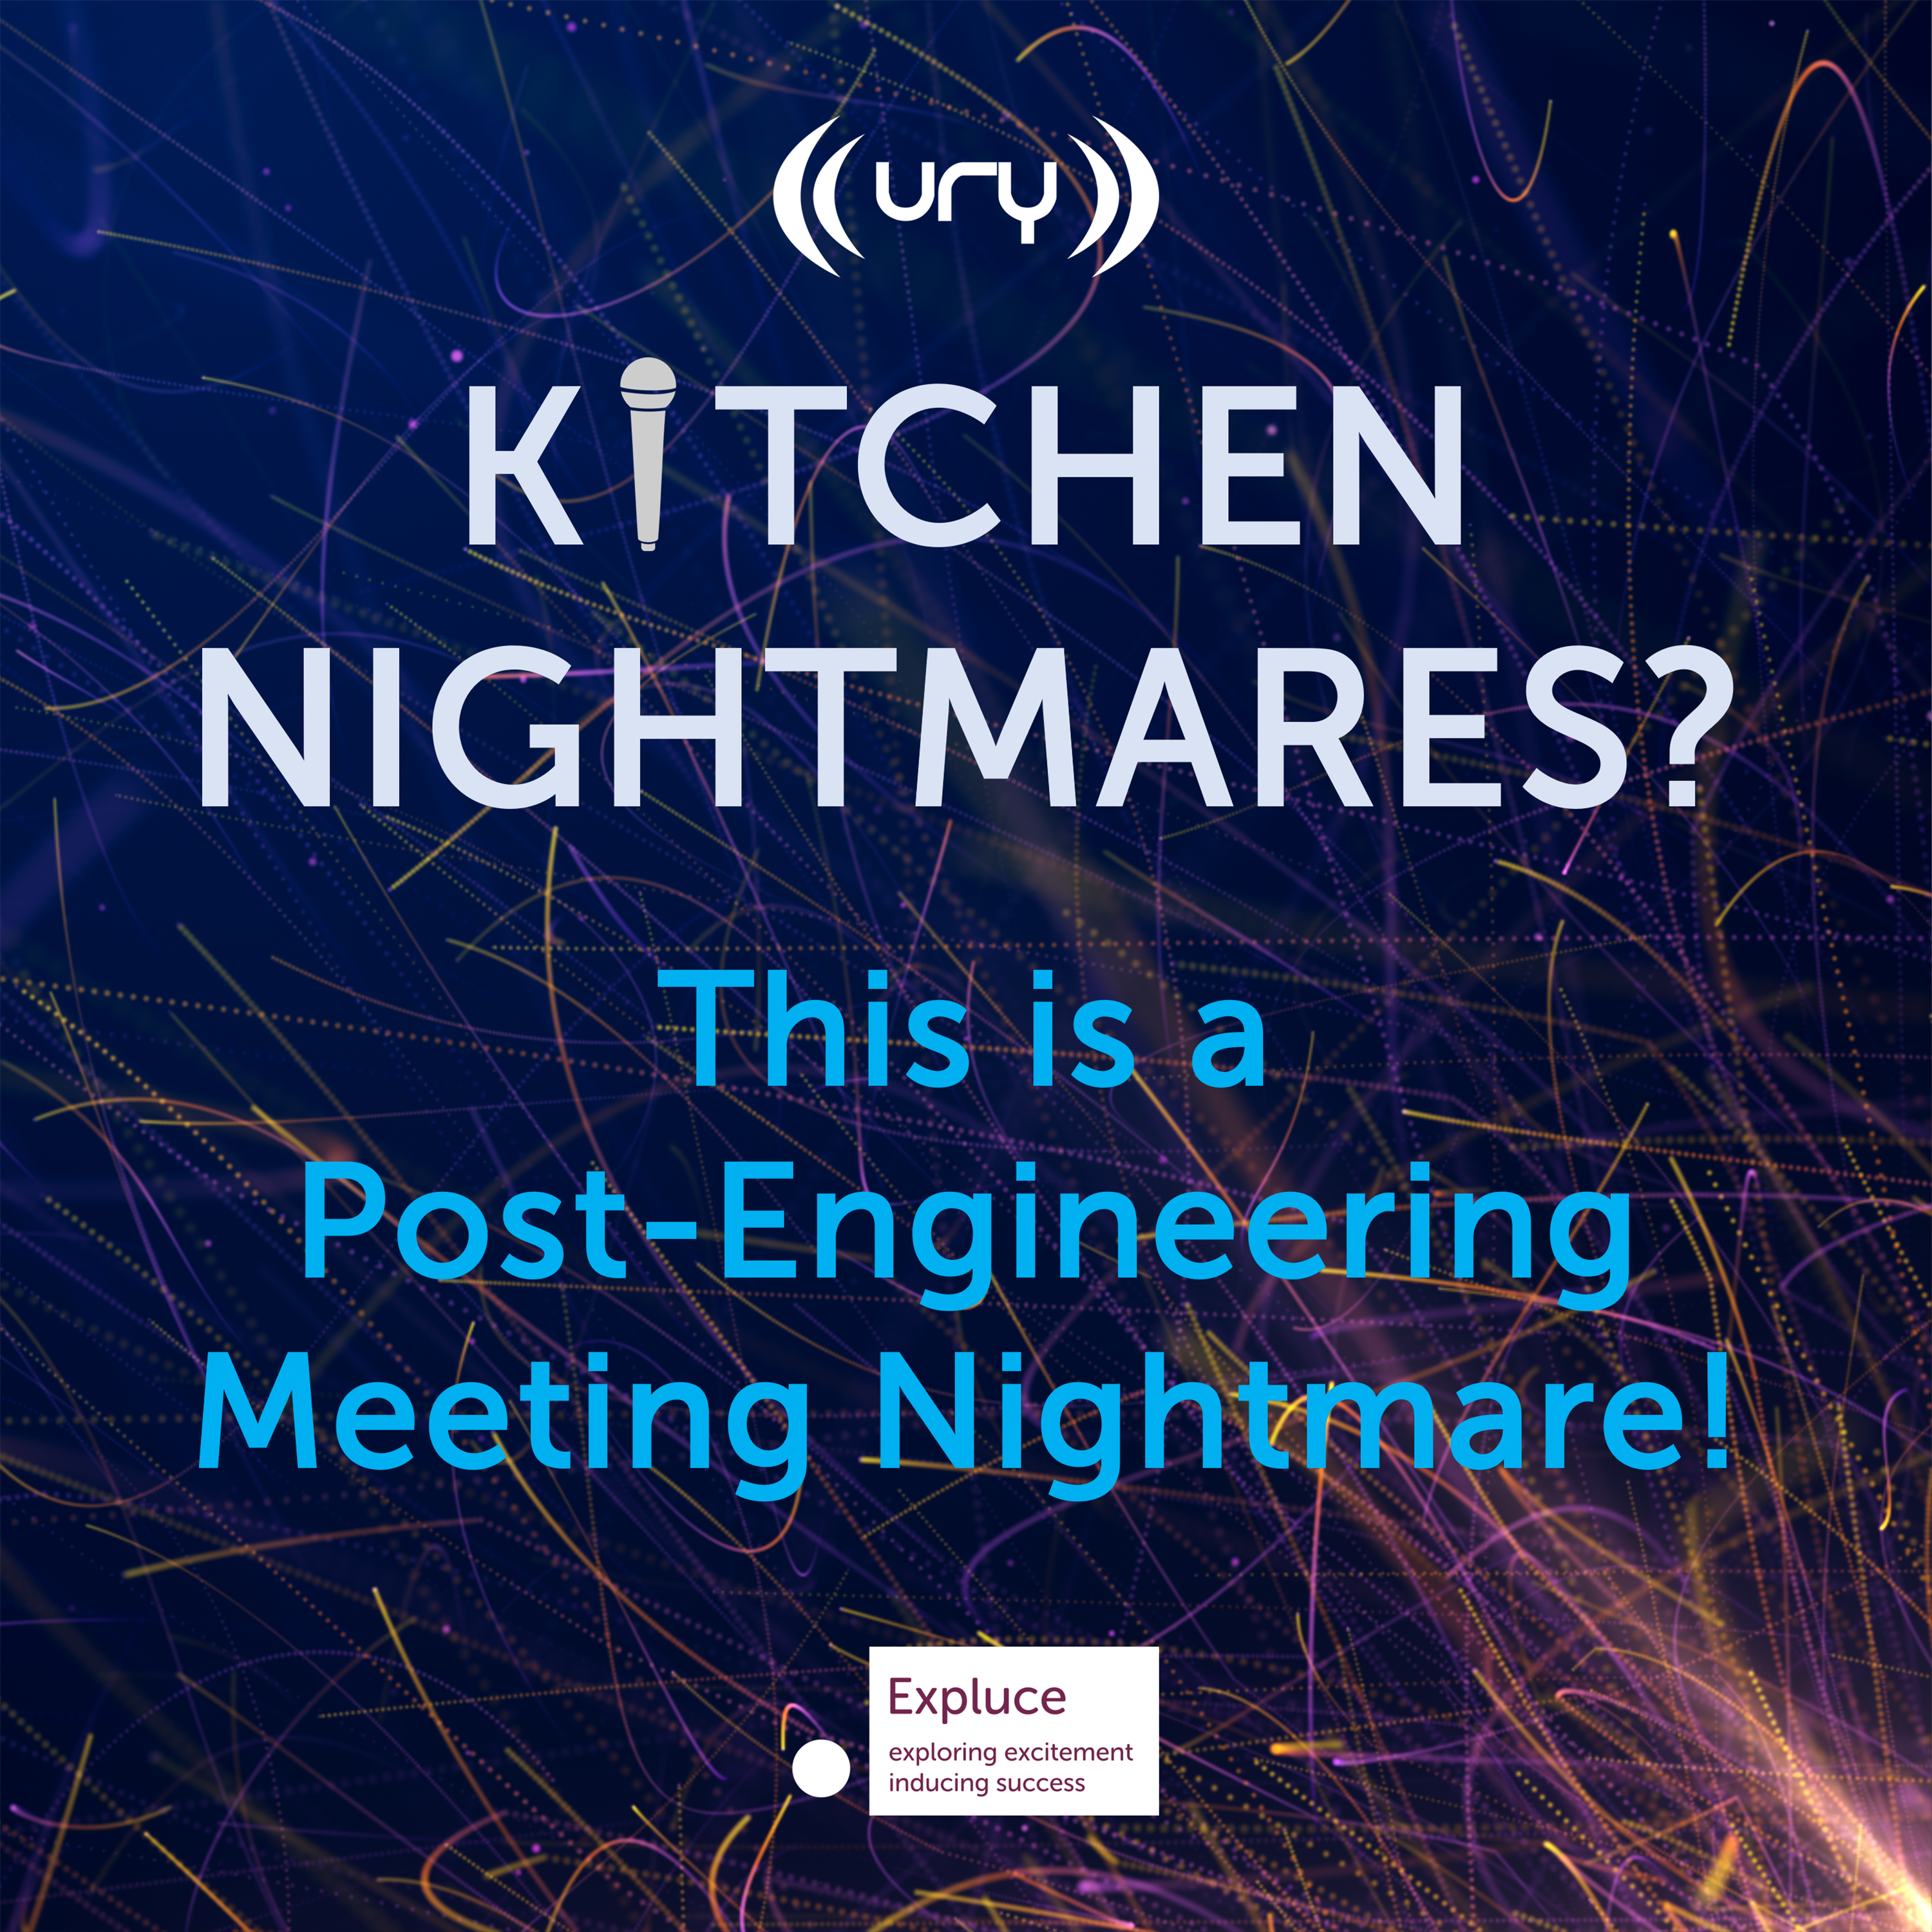 Kitchen Nightmares? This is a Post-Engineering Meeting Nightmare! Logo